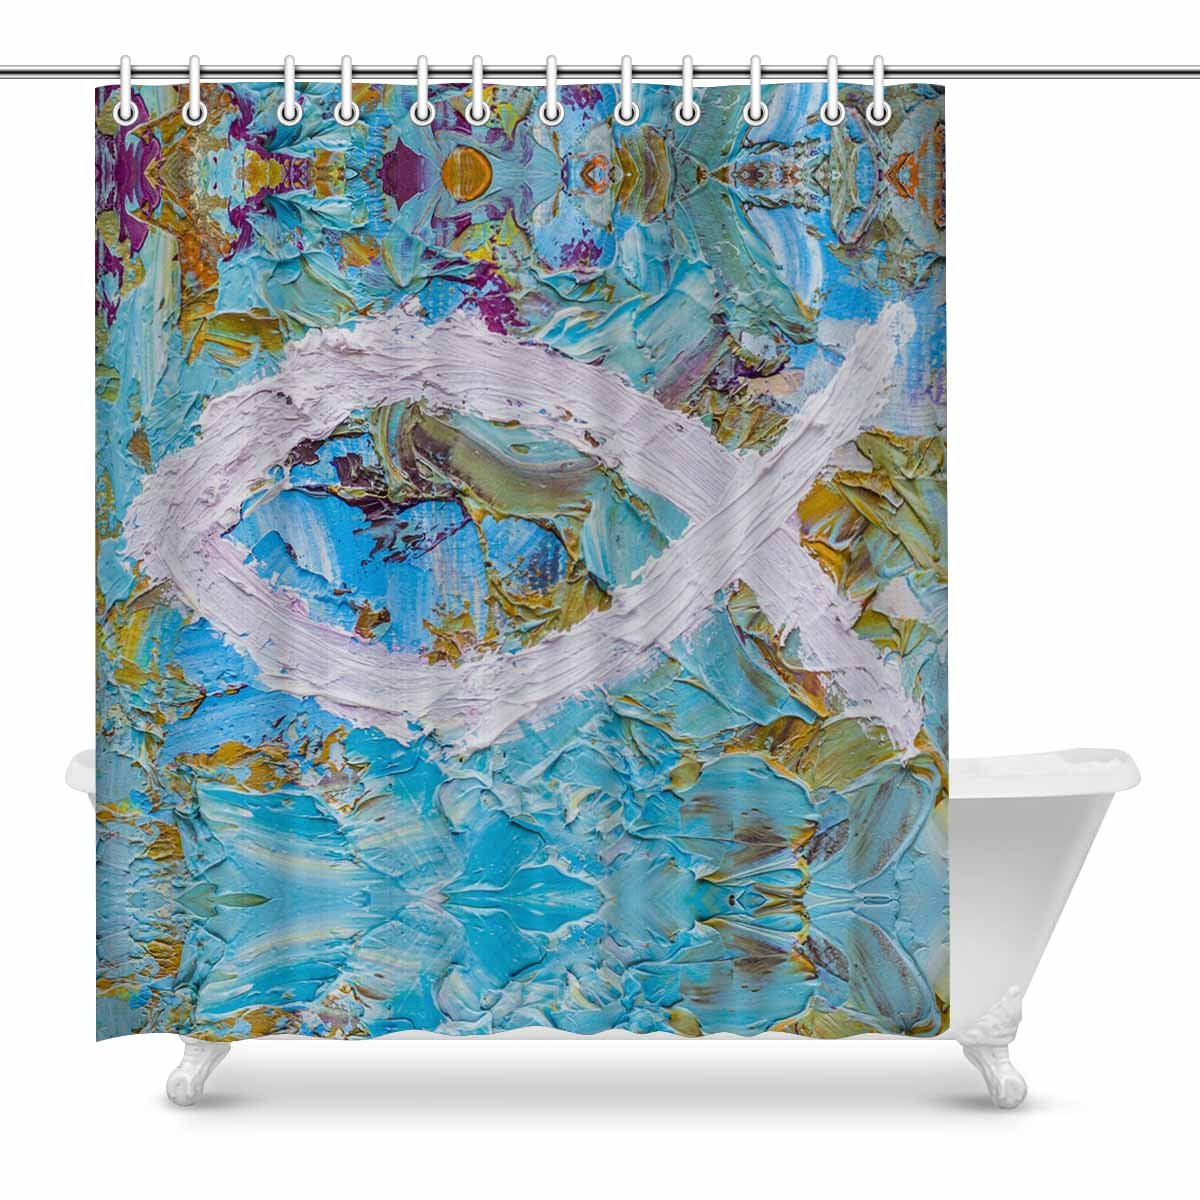 InterestPrint Colorful Christian Fish Christian Symbol Home Decor Waterproof Polyester Bathroom Shower Curtain Bath Decorations with Hooks, 72(Wide) x 84(Height) Inches by InterestPrint